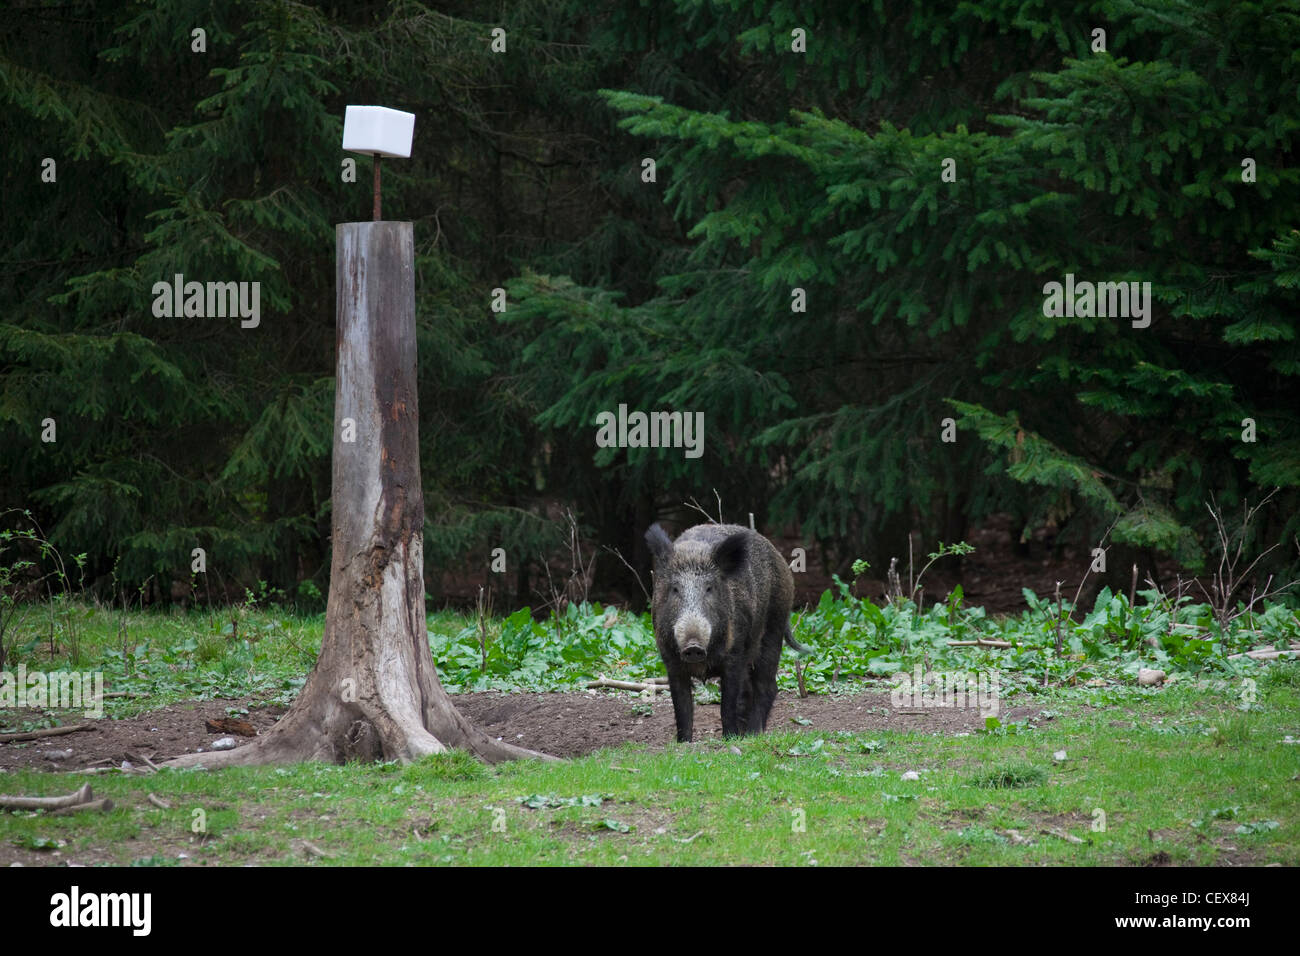 Wild boar (Sus scrofa) sow at salt lick in pine forest, Germany - Stock Image